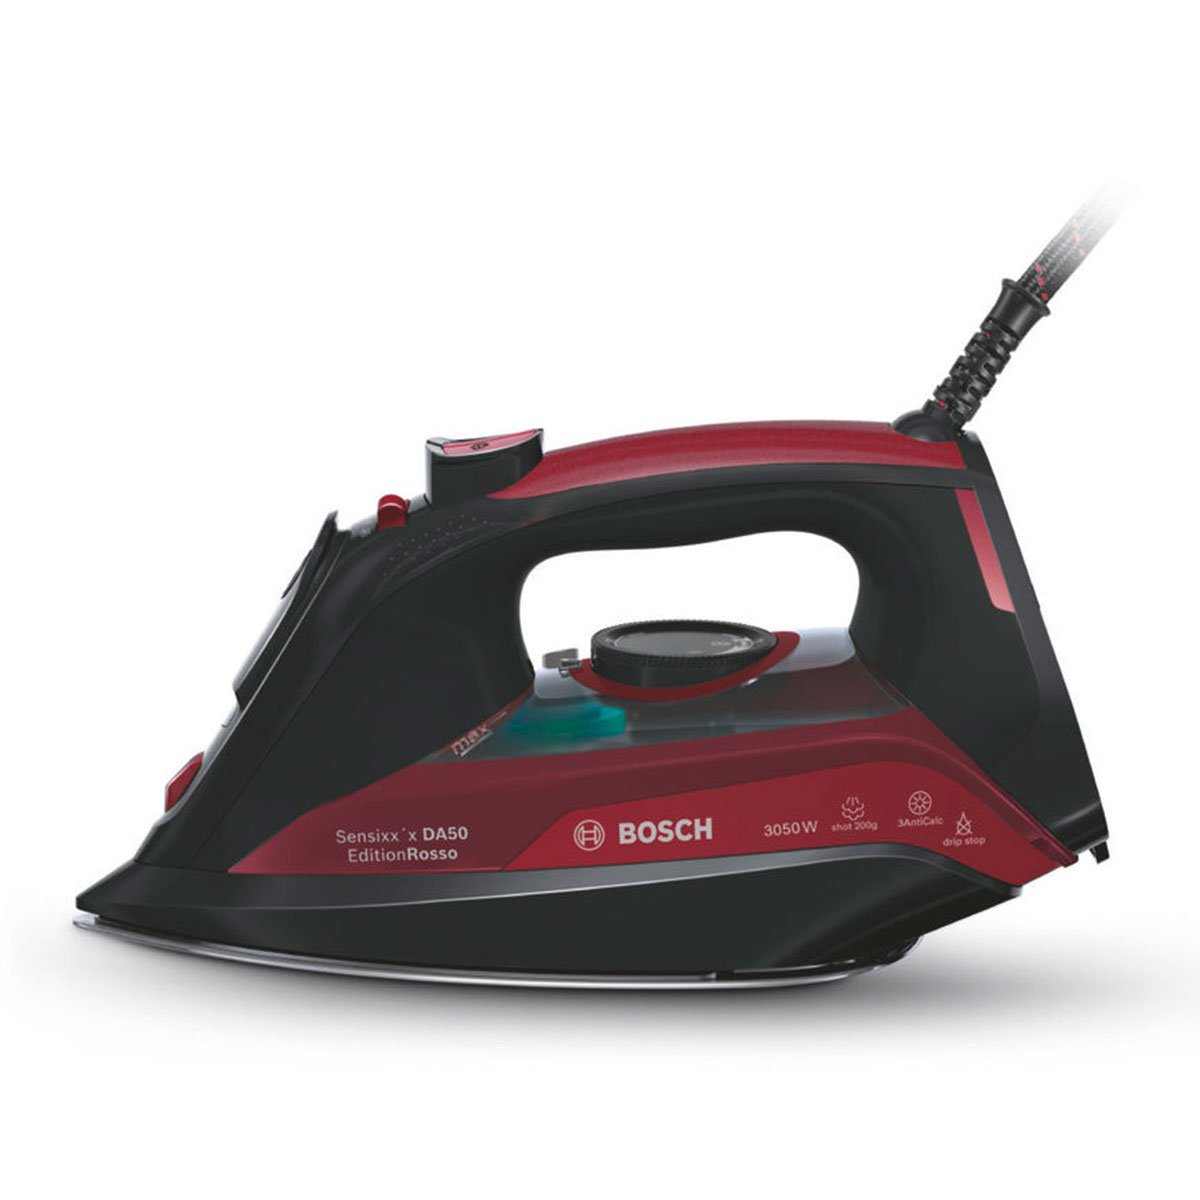 bosch tda5070gb steam iron reviews